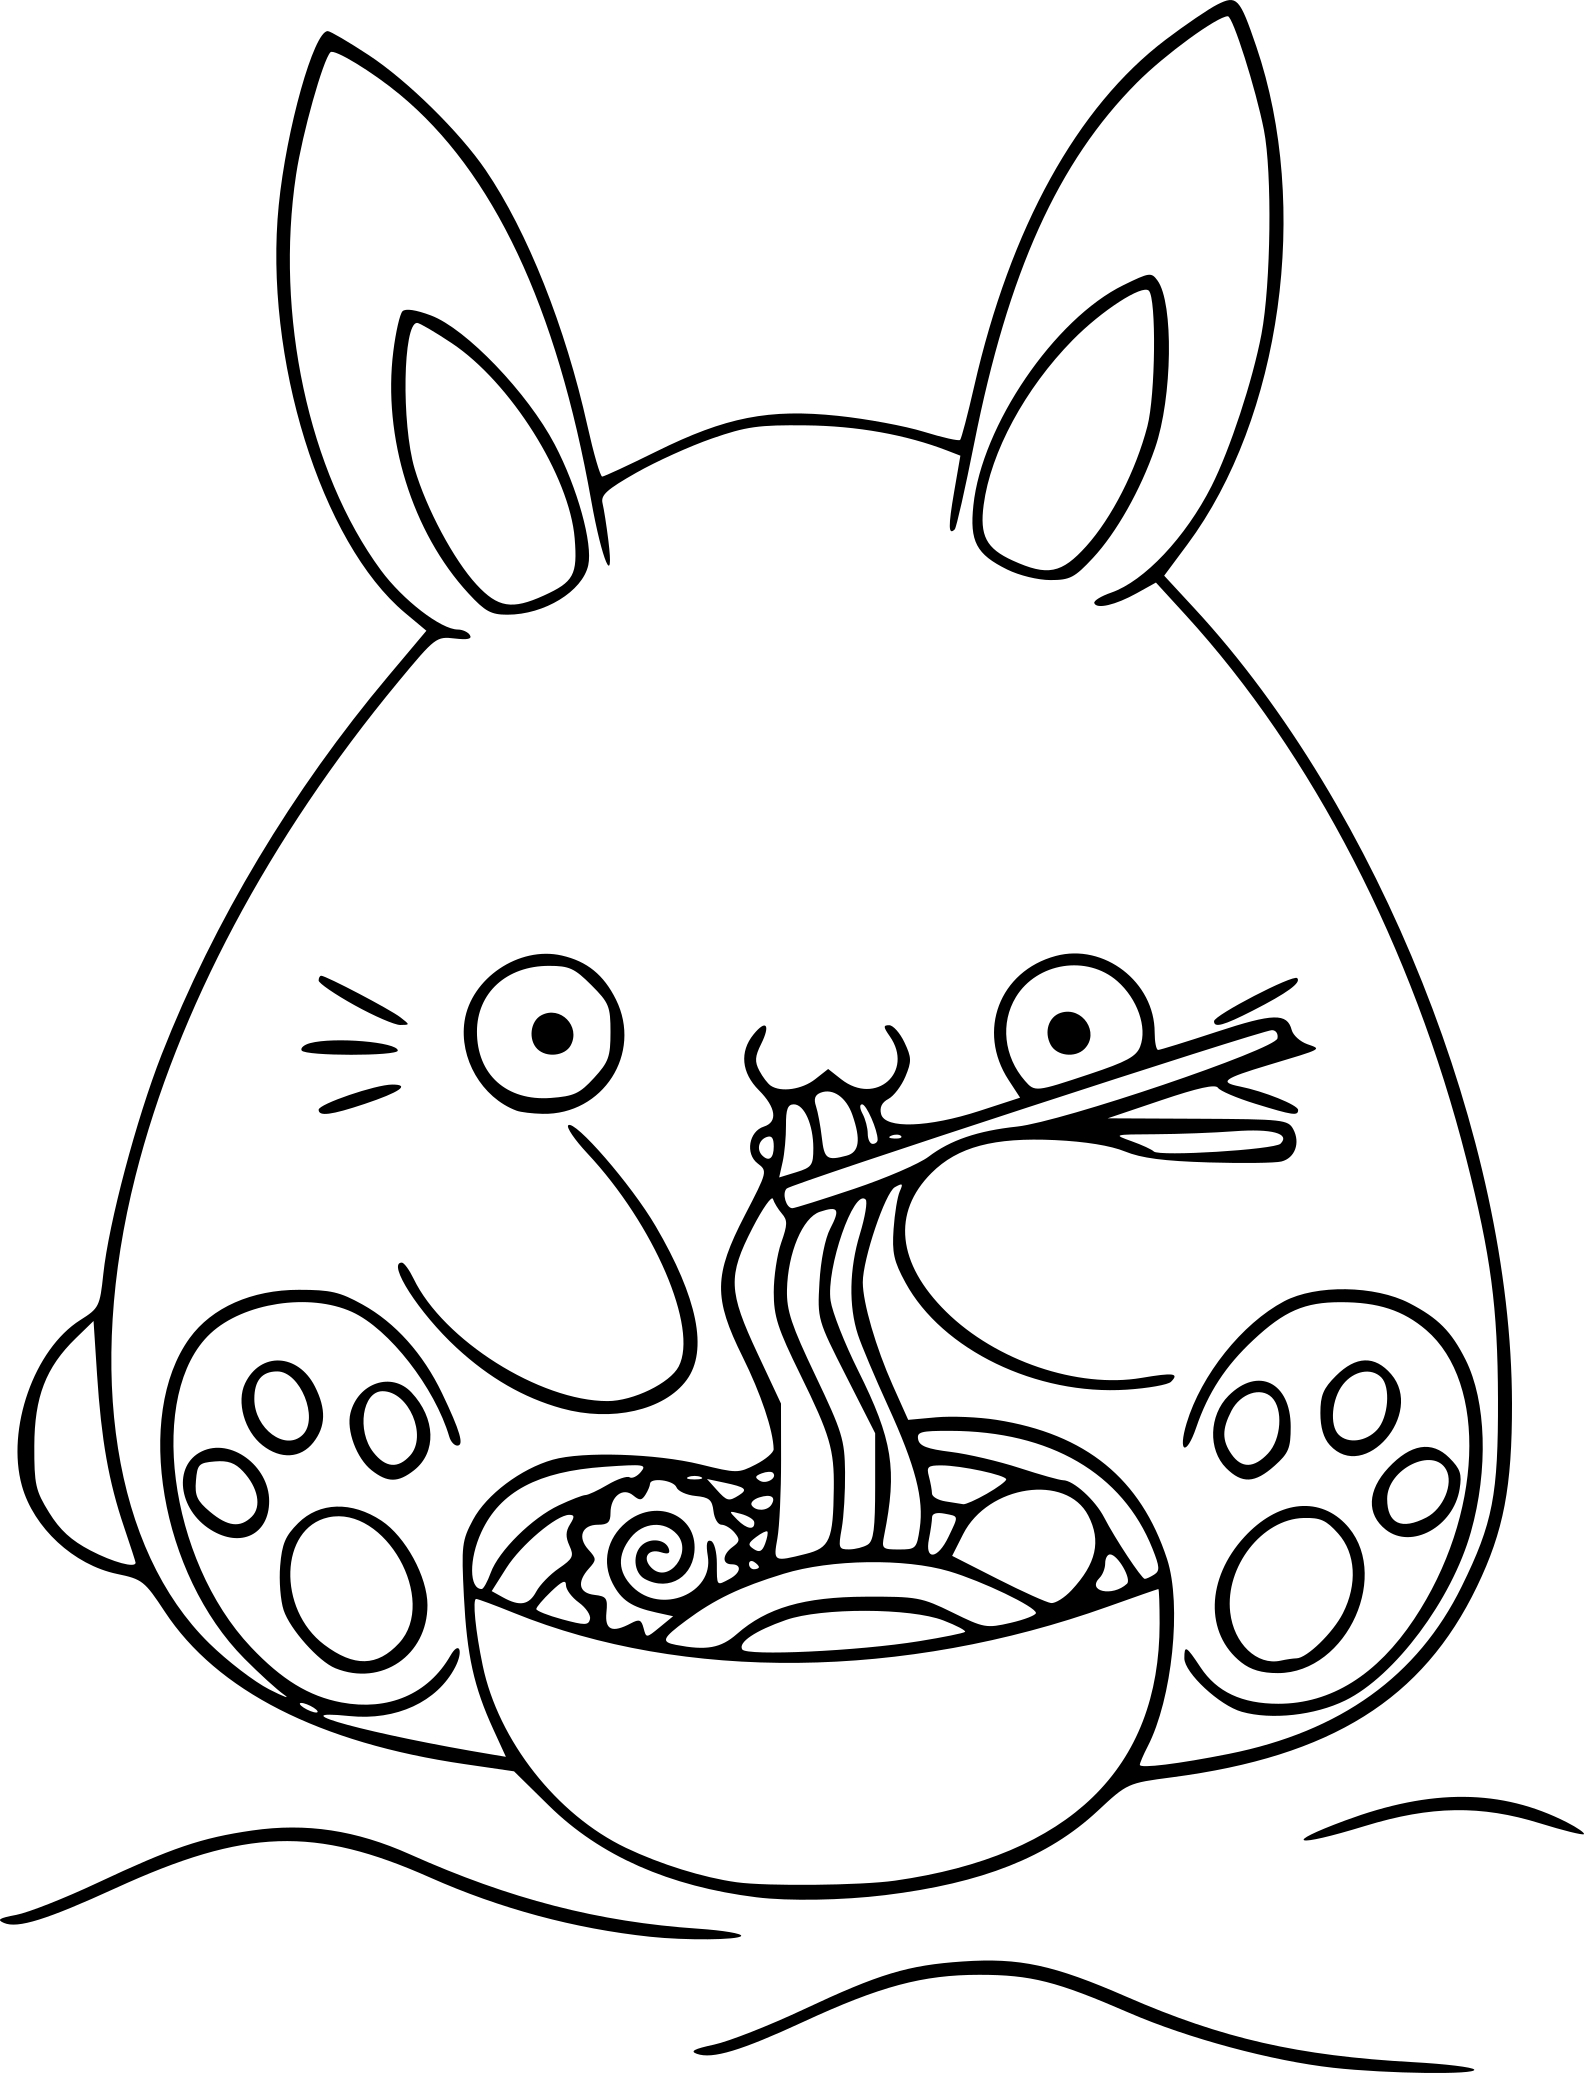 coloring cute kawaii cute kawaii coloring pages at getcoloringscom free cute coloring kawaii